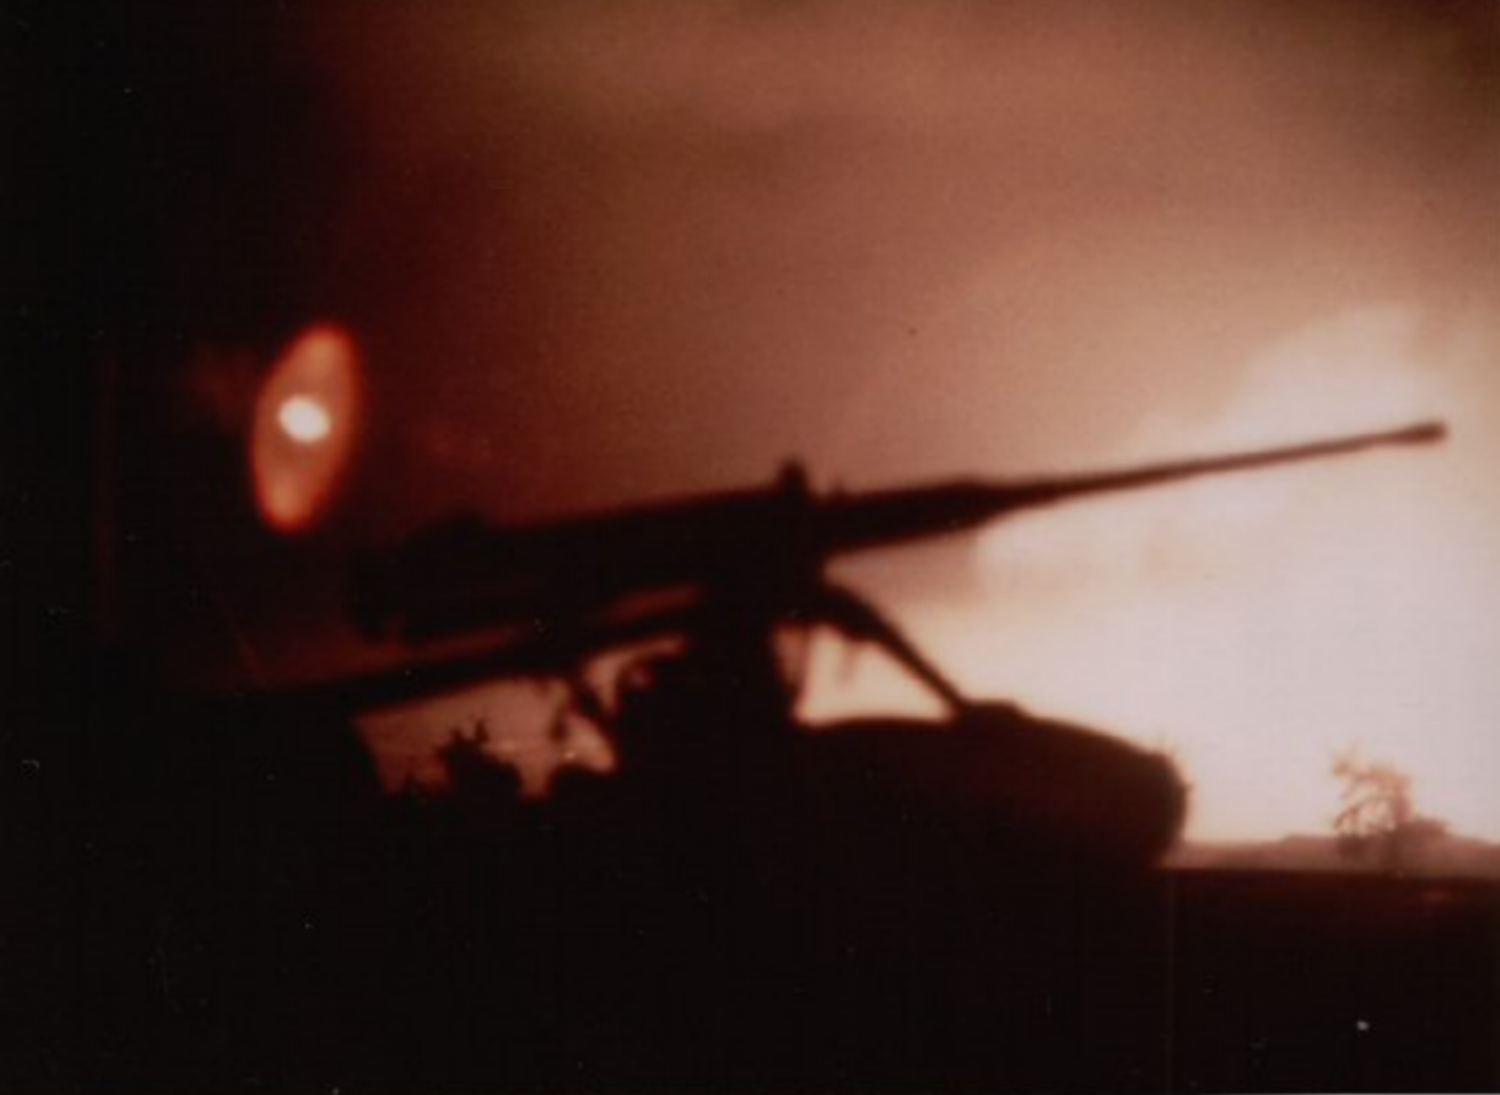 Early morning hours, Wednesday, January 31, and the Tet Offensive has just been launched. View is from atopLZBetty's water tower